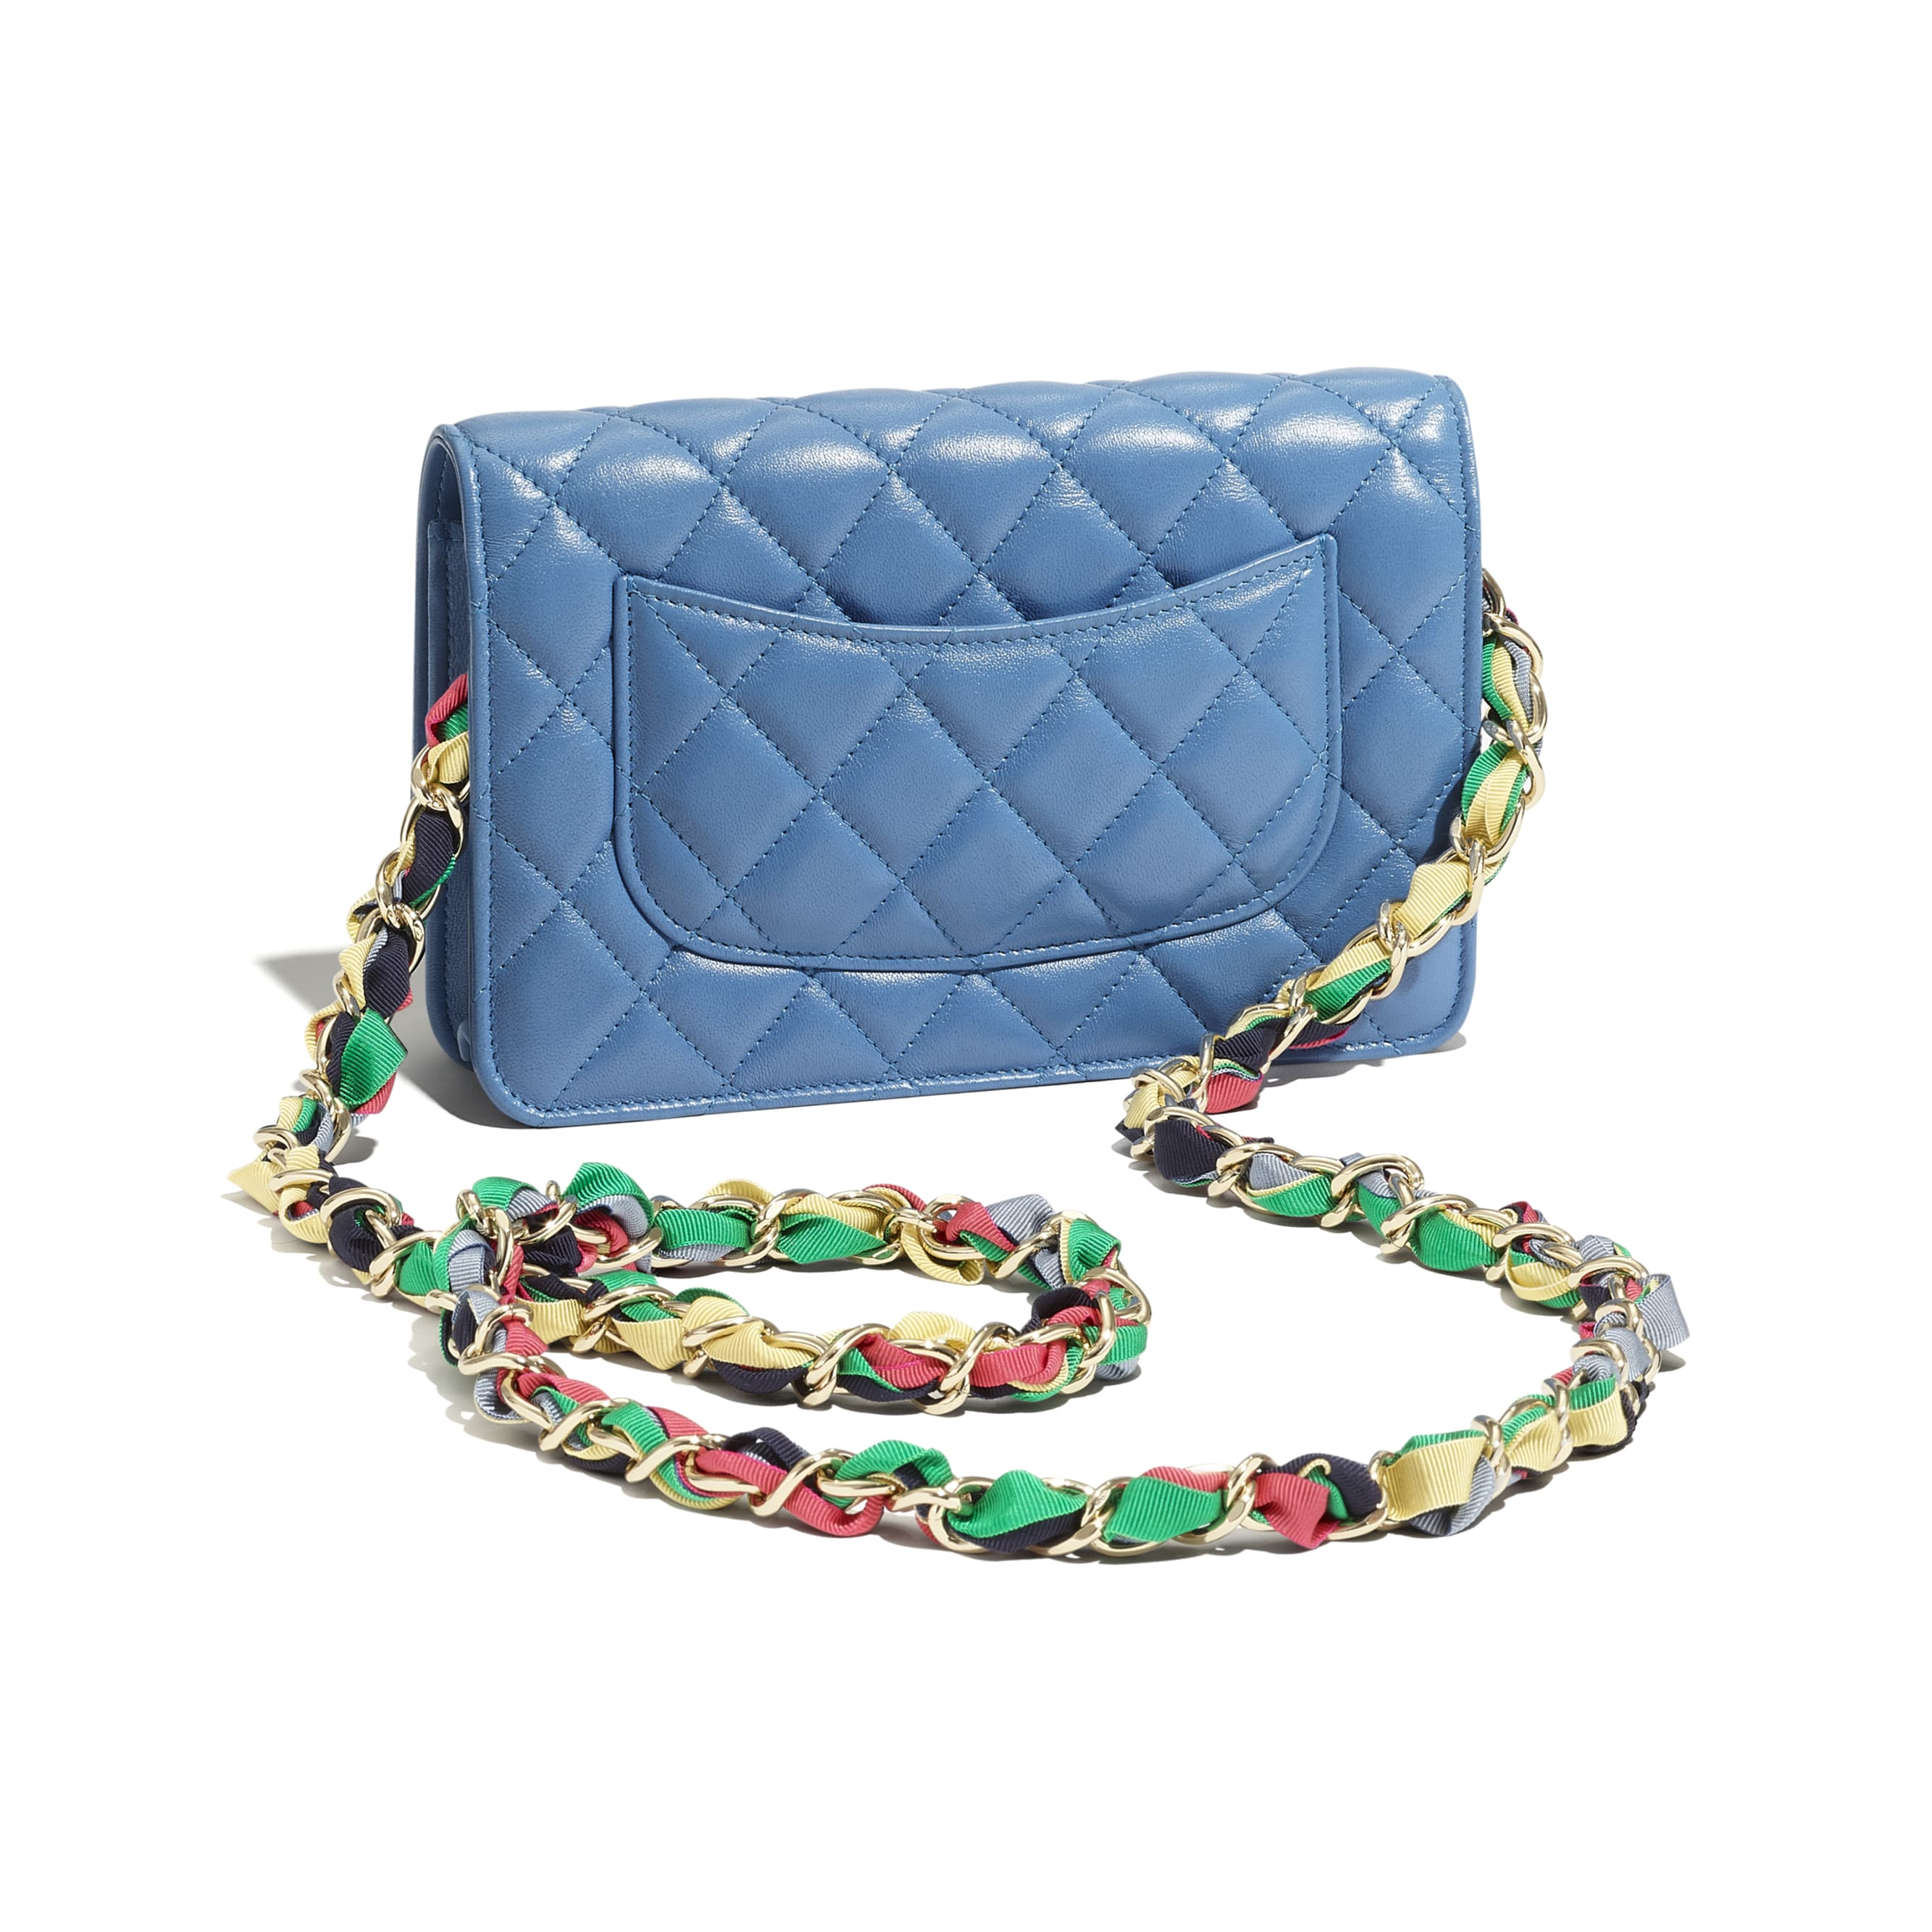 Wallet On Chain - Blue - Shiny Lambskin, Ribbon & Gold-Tone Metal - CHANEL - Extra view - see standard sized version